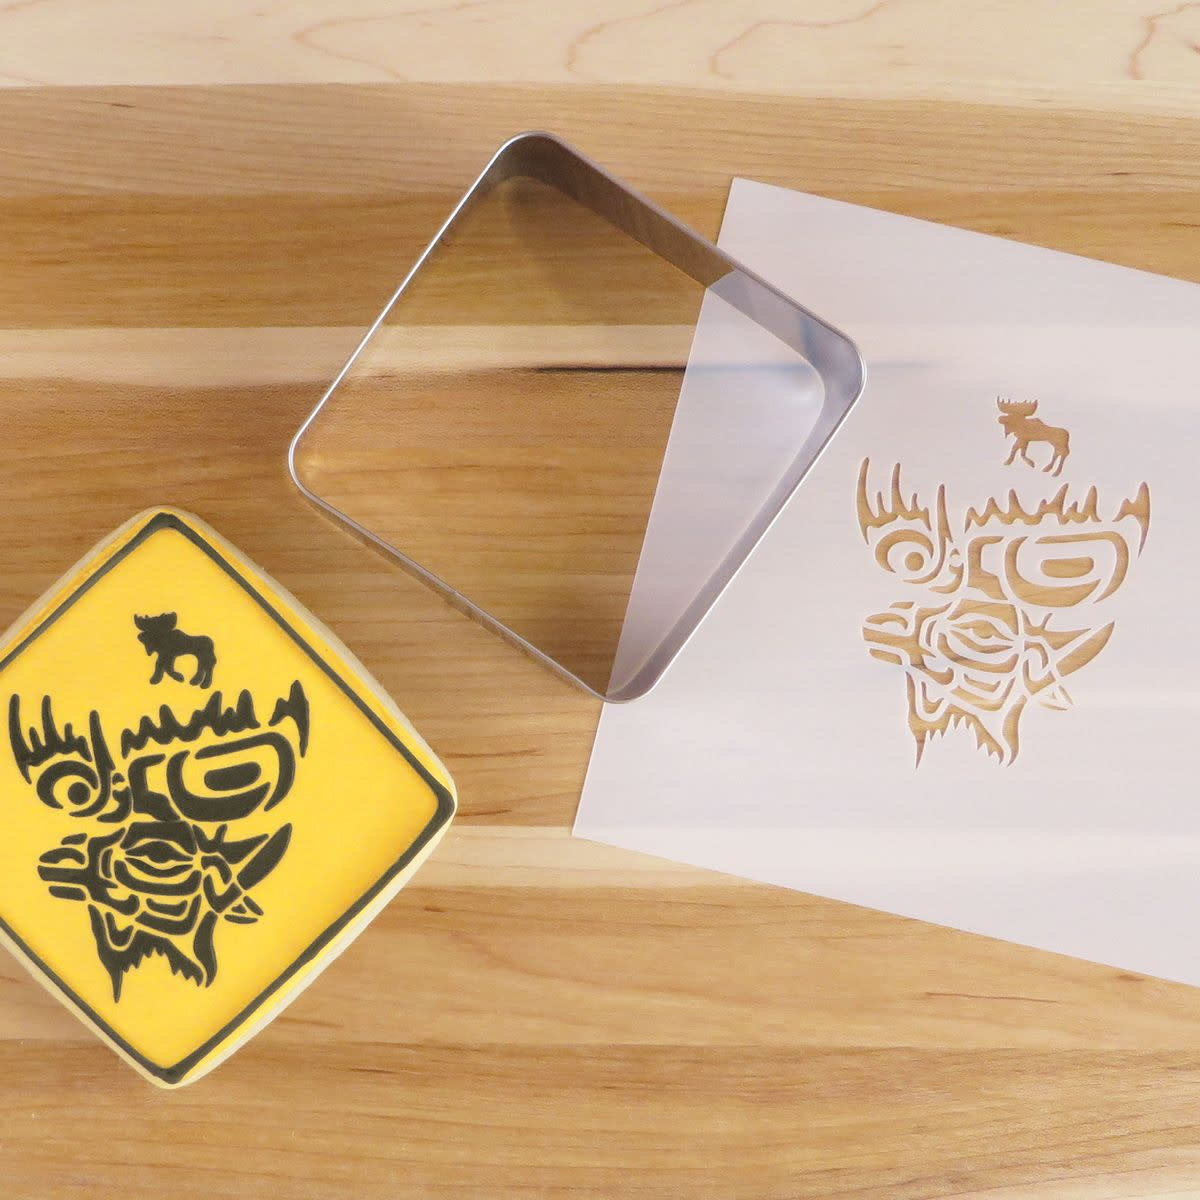 Cookie Cutter & Stencil Set-Moose Crossing by Terry Star-1